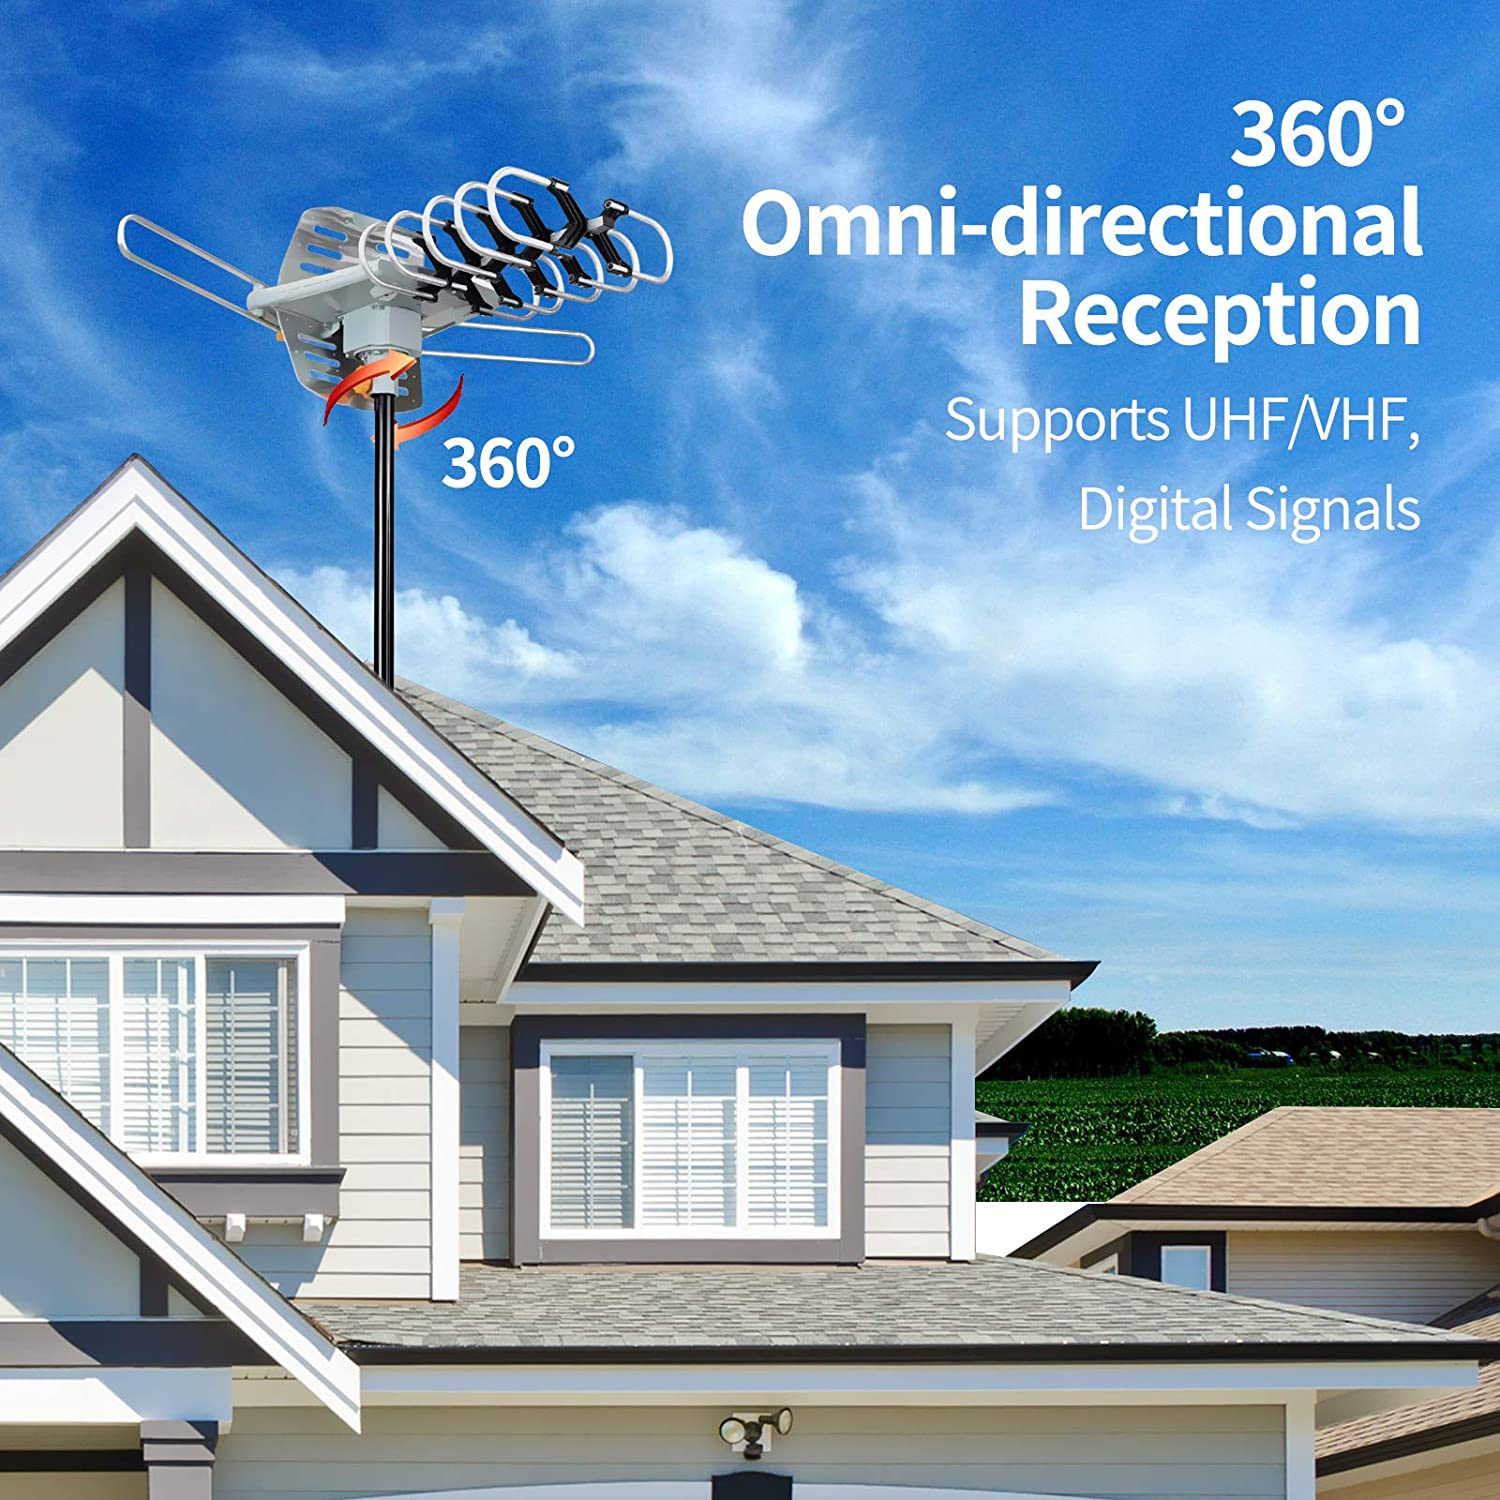 Outdoor Amplified Digital HDTV Antenna Amplified HD TV Antenna for 2 TVs Support UHF//VHF 4K 1080P with Mounting Pole /& 33 ft RG6 Coax Cable 150 Mile Motorized 360 Degree Rotation